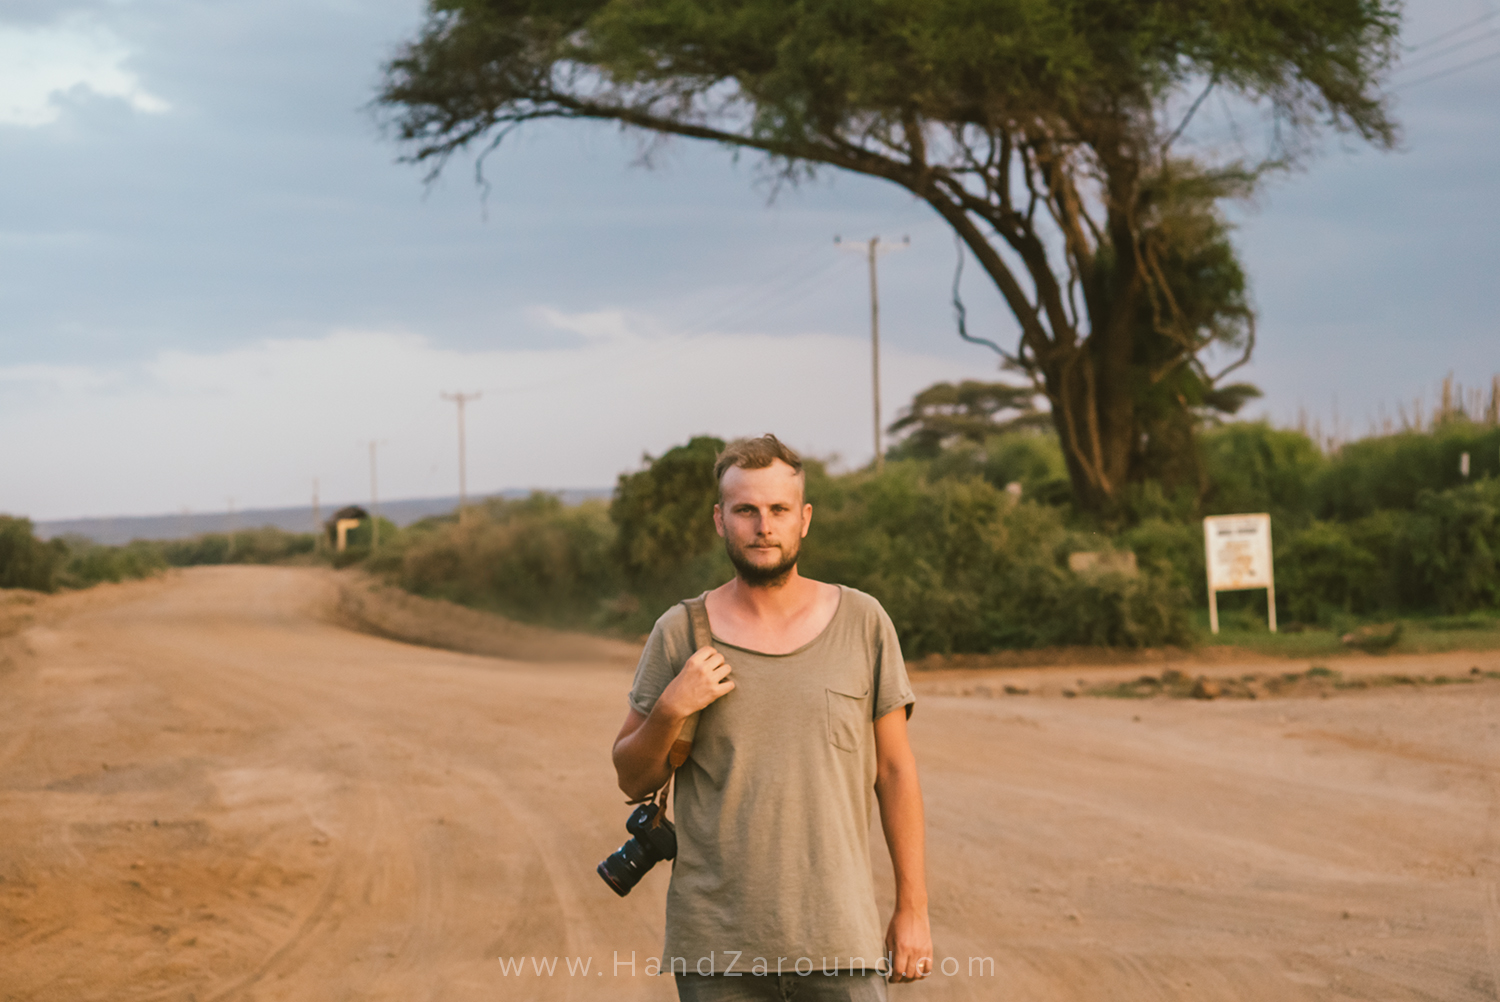 Canon 5D M2 - Zach in Amboseli (Kenya) with our good old Canon hanging down his arm!